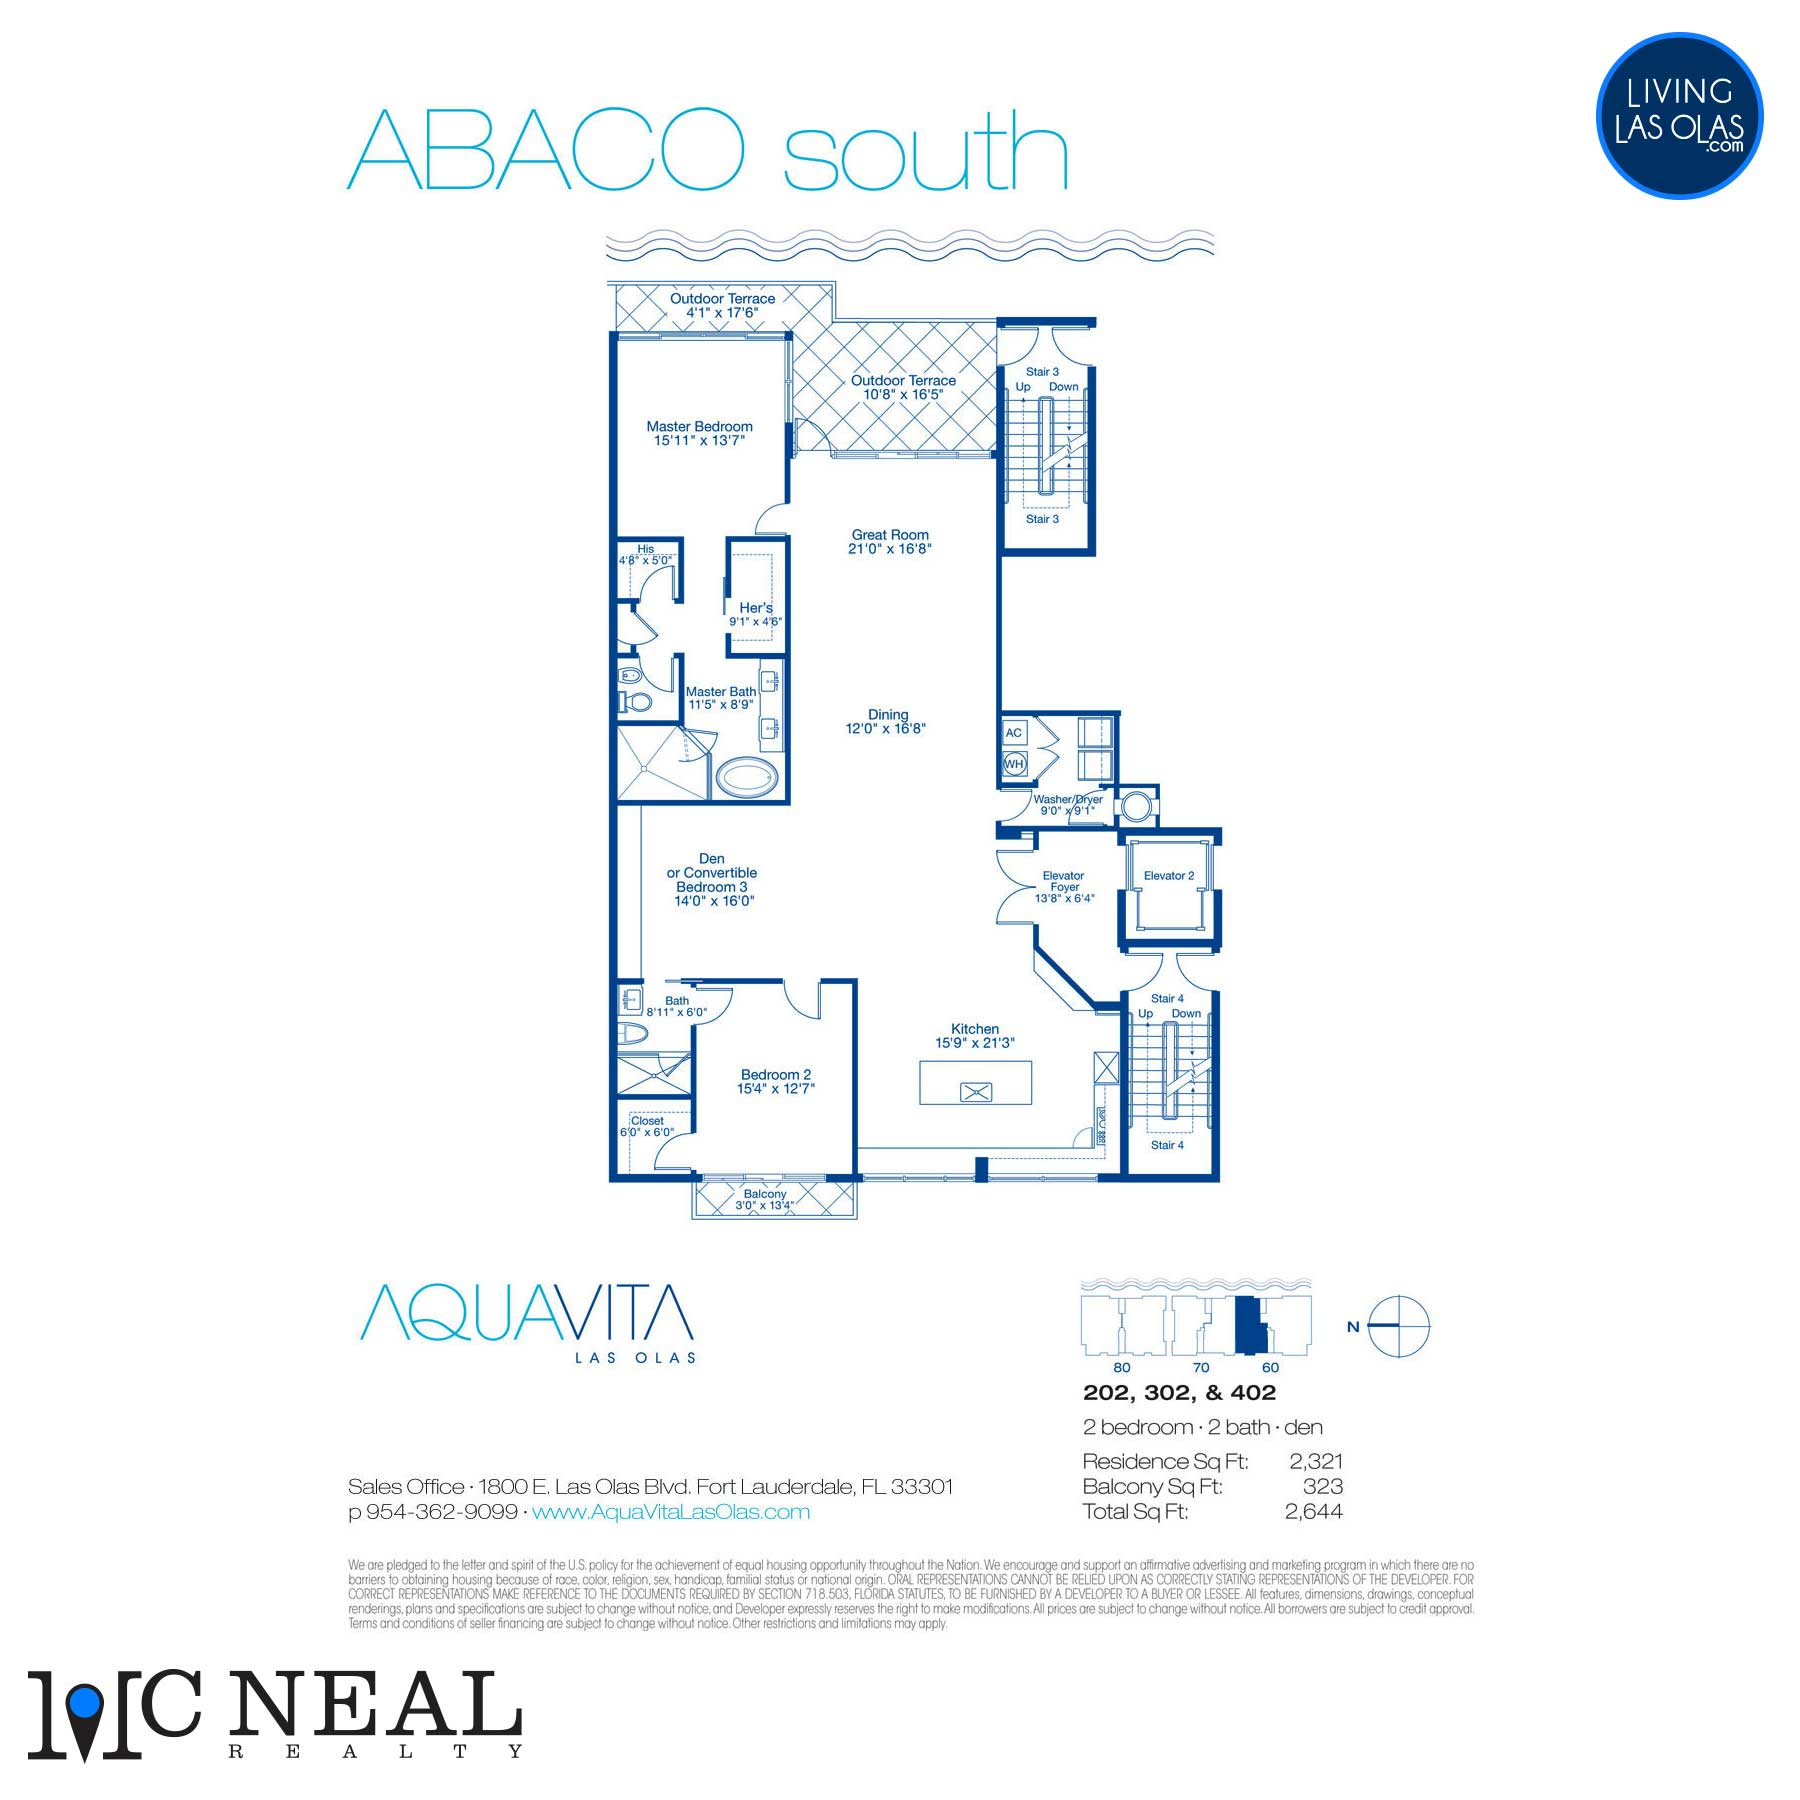 AquaVita Las Olas Floor Plans Abaco S